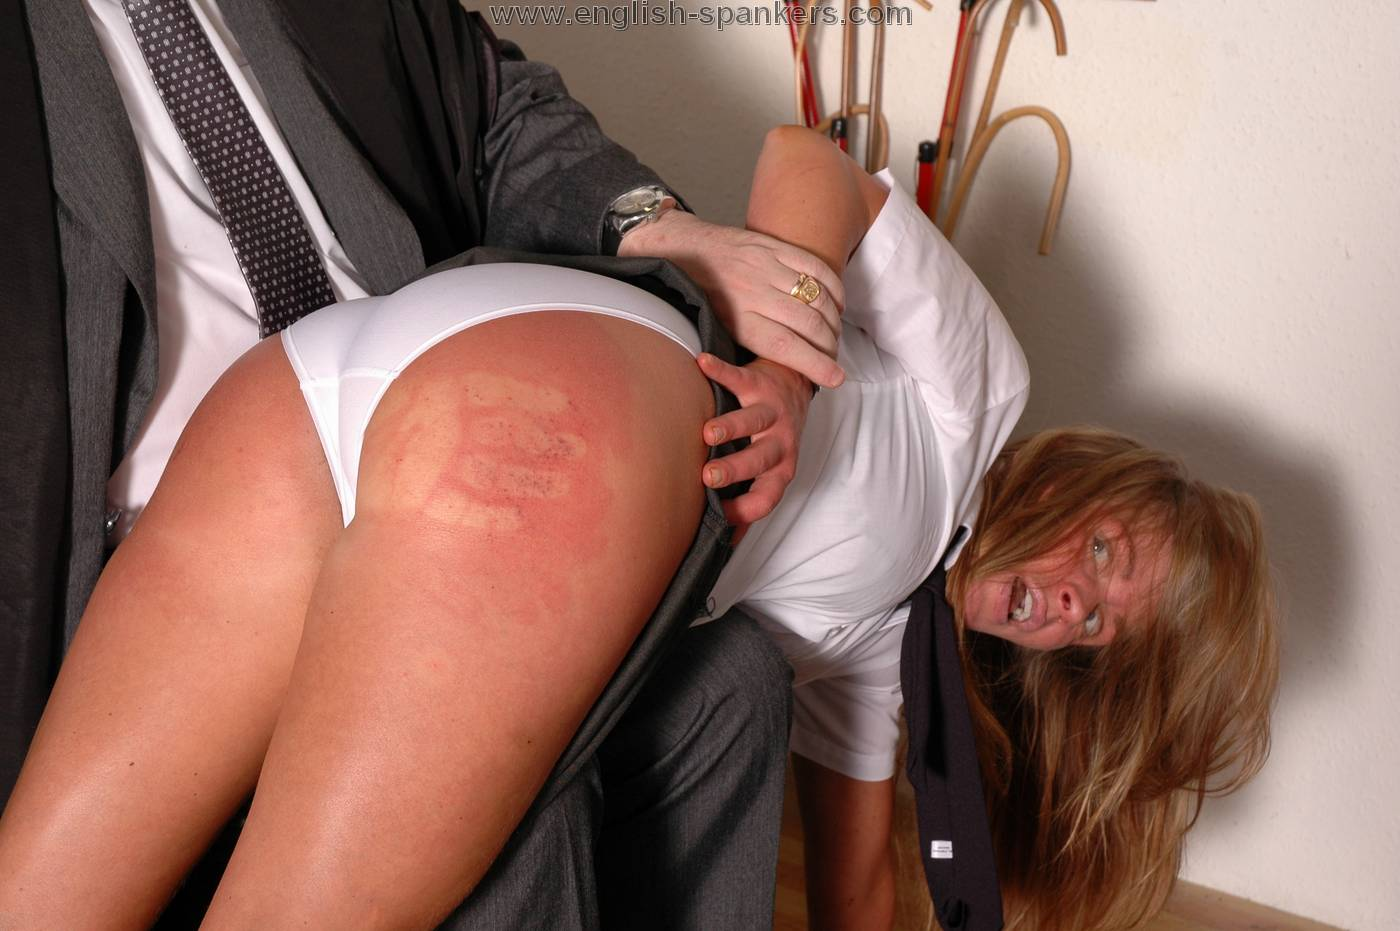 girls getting spanked video free jpg 1500x1000